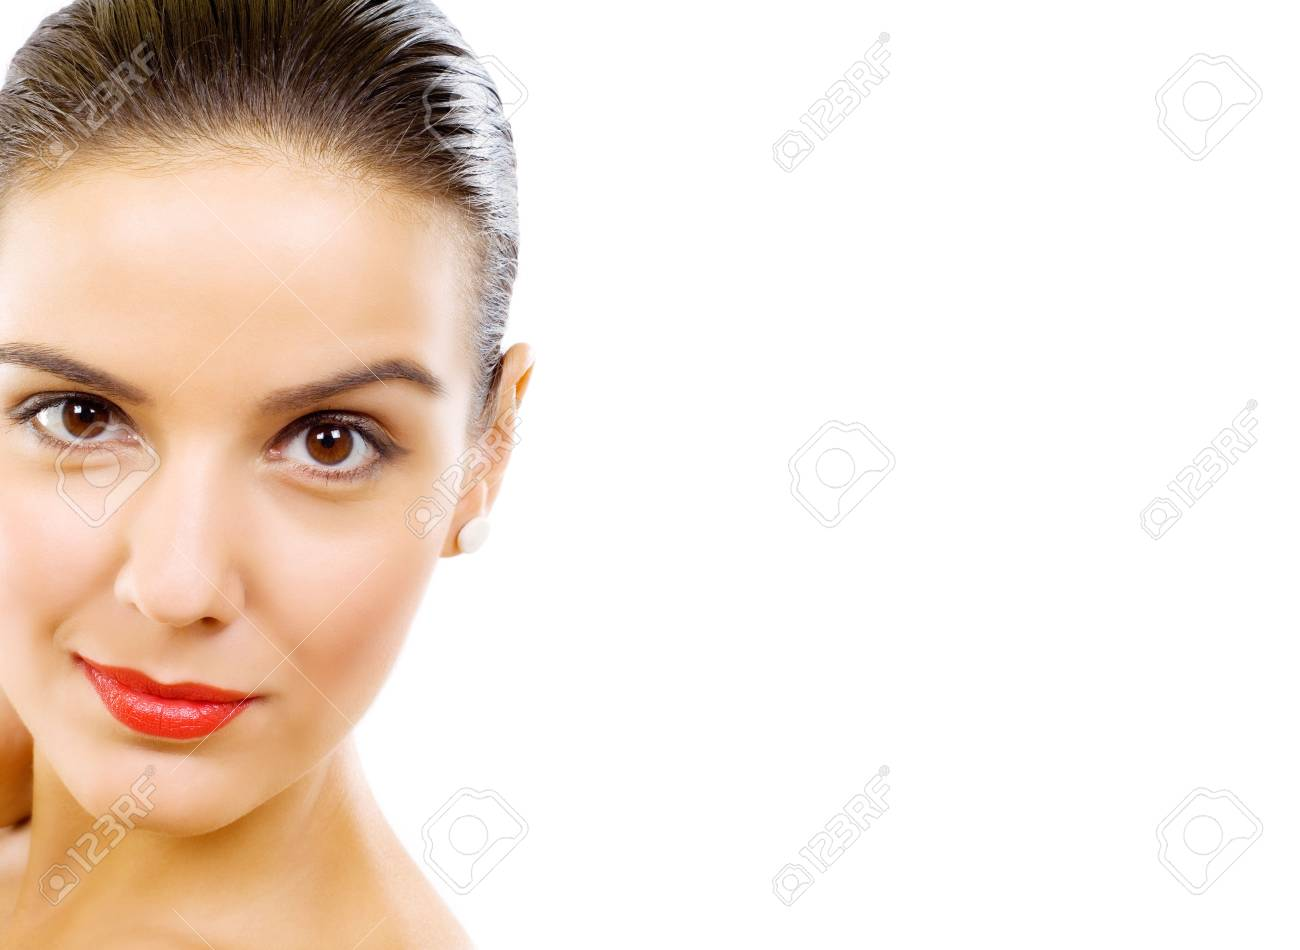 Cropped image of beautiful young woman over white background Stock Photo - 5641330